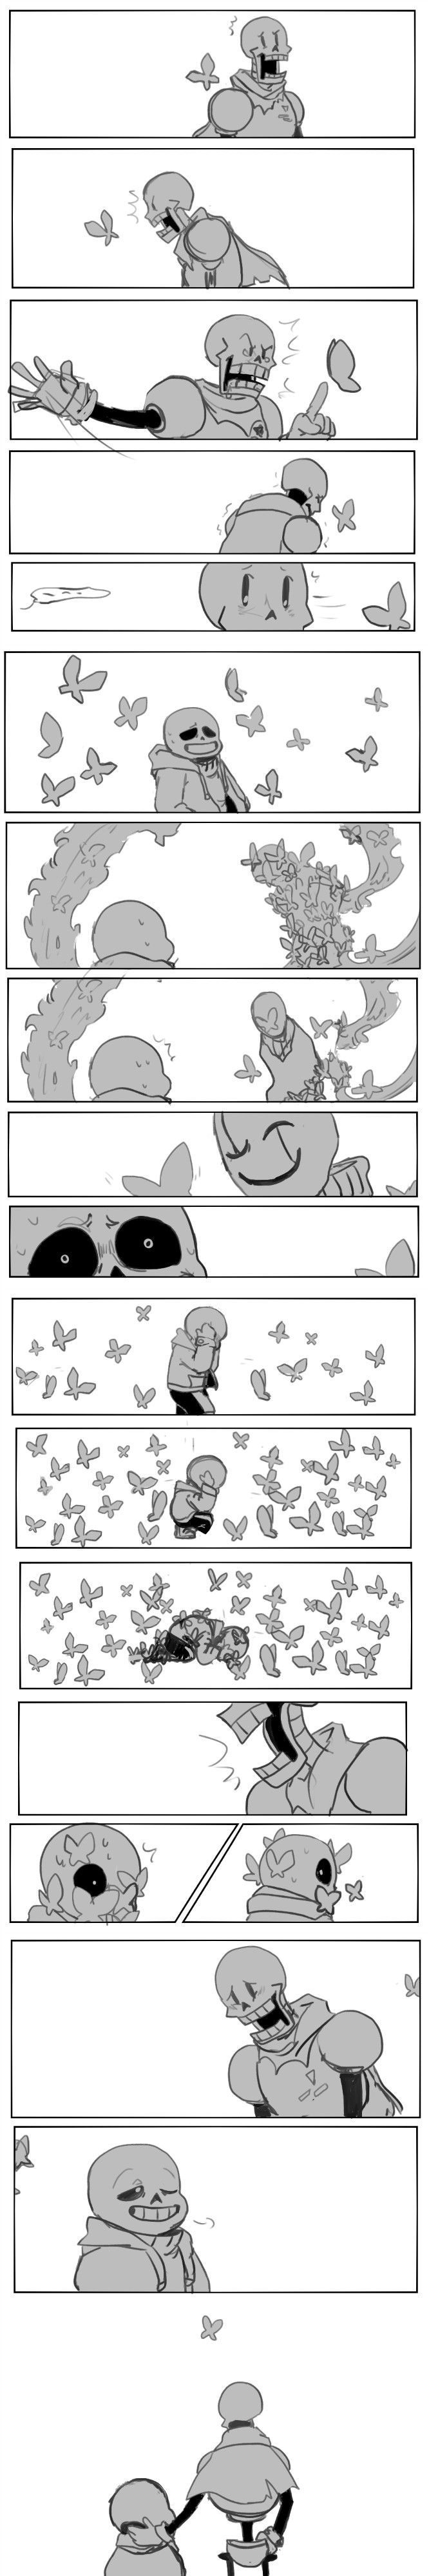 Papyrus, Sans, and Gaster - Steven Universe - Here Comes a Thought #song #parody #comic